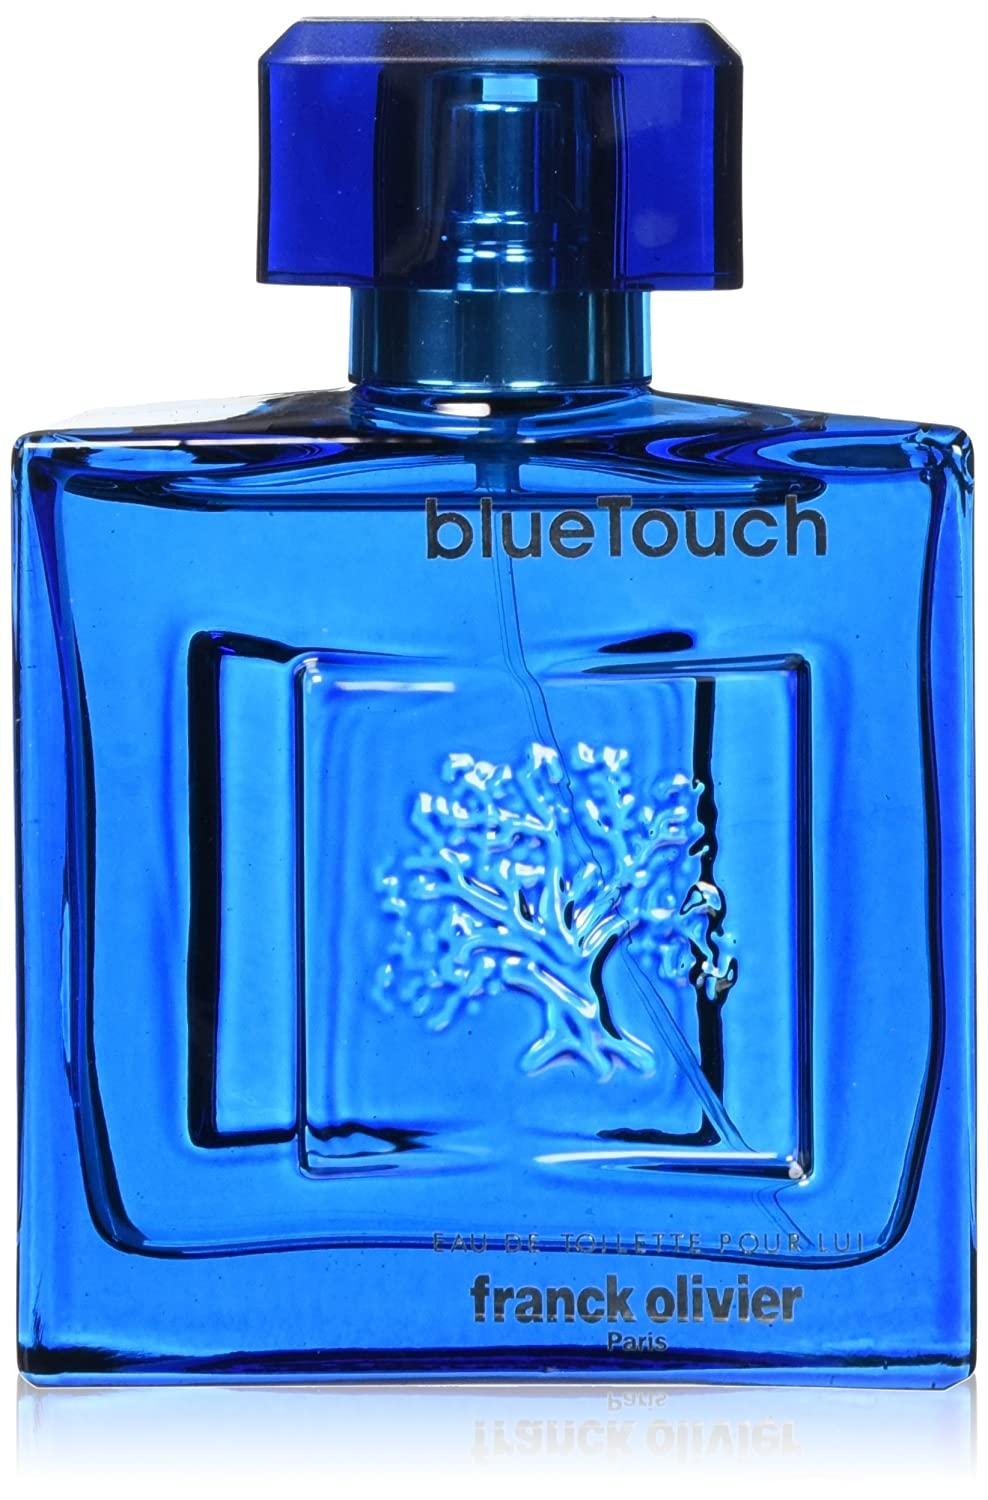 Blue Touch by Franck Olivier Eau de Toilette Spray 100 ml: Amazon.es: Belleza